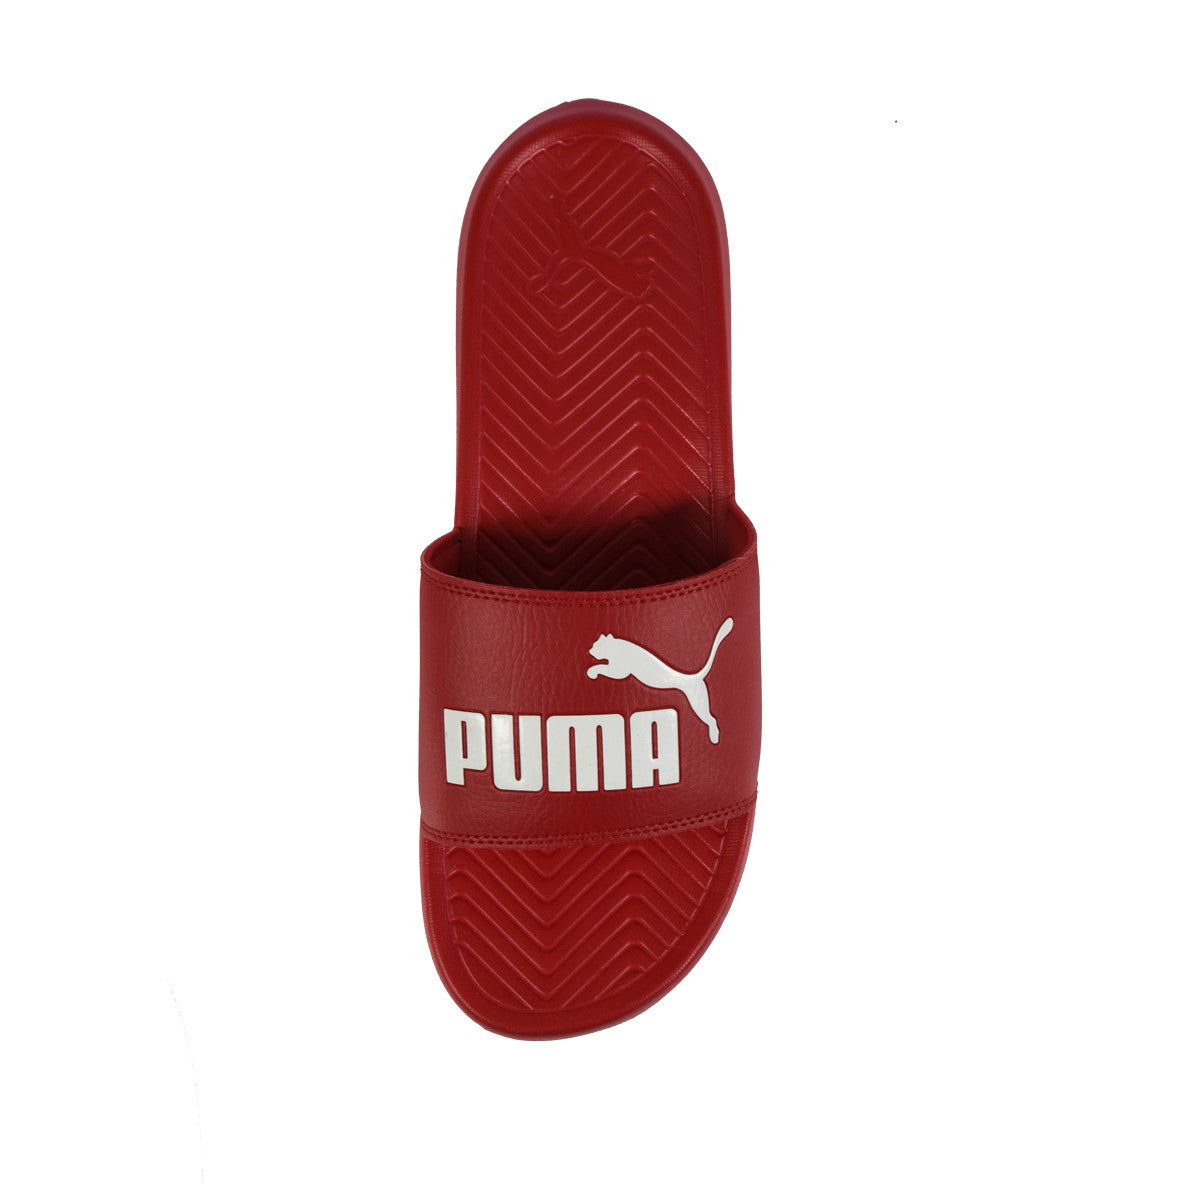 dec970d54ab1 puma red sandals cheap   OFF64% Discounted